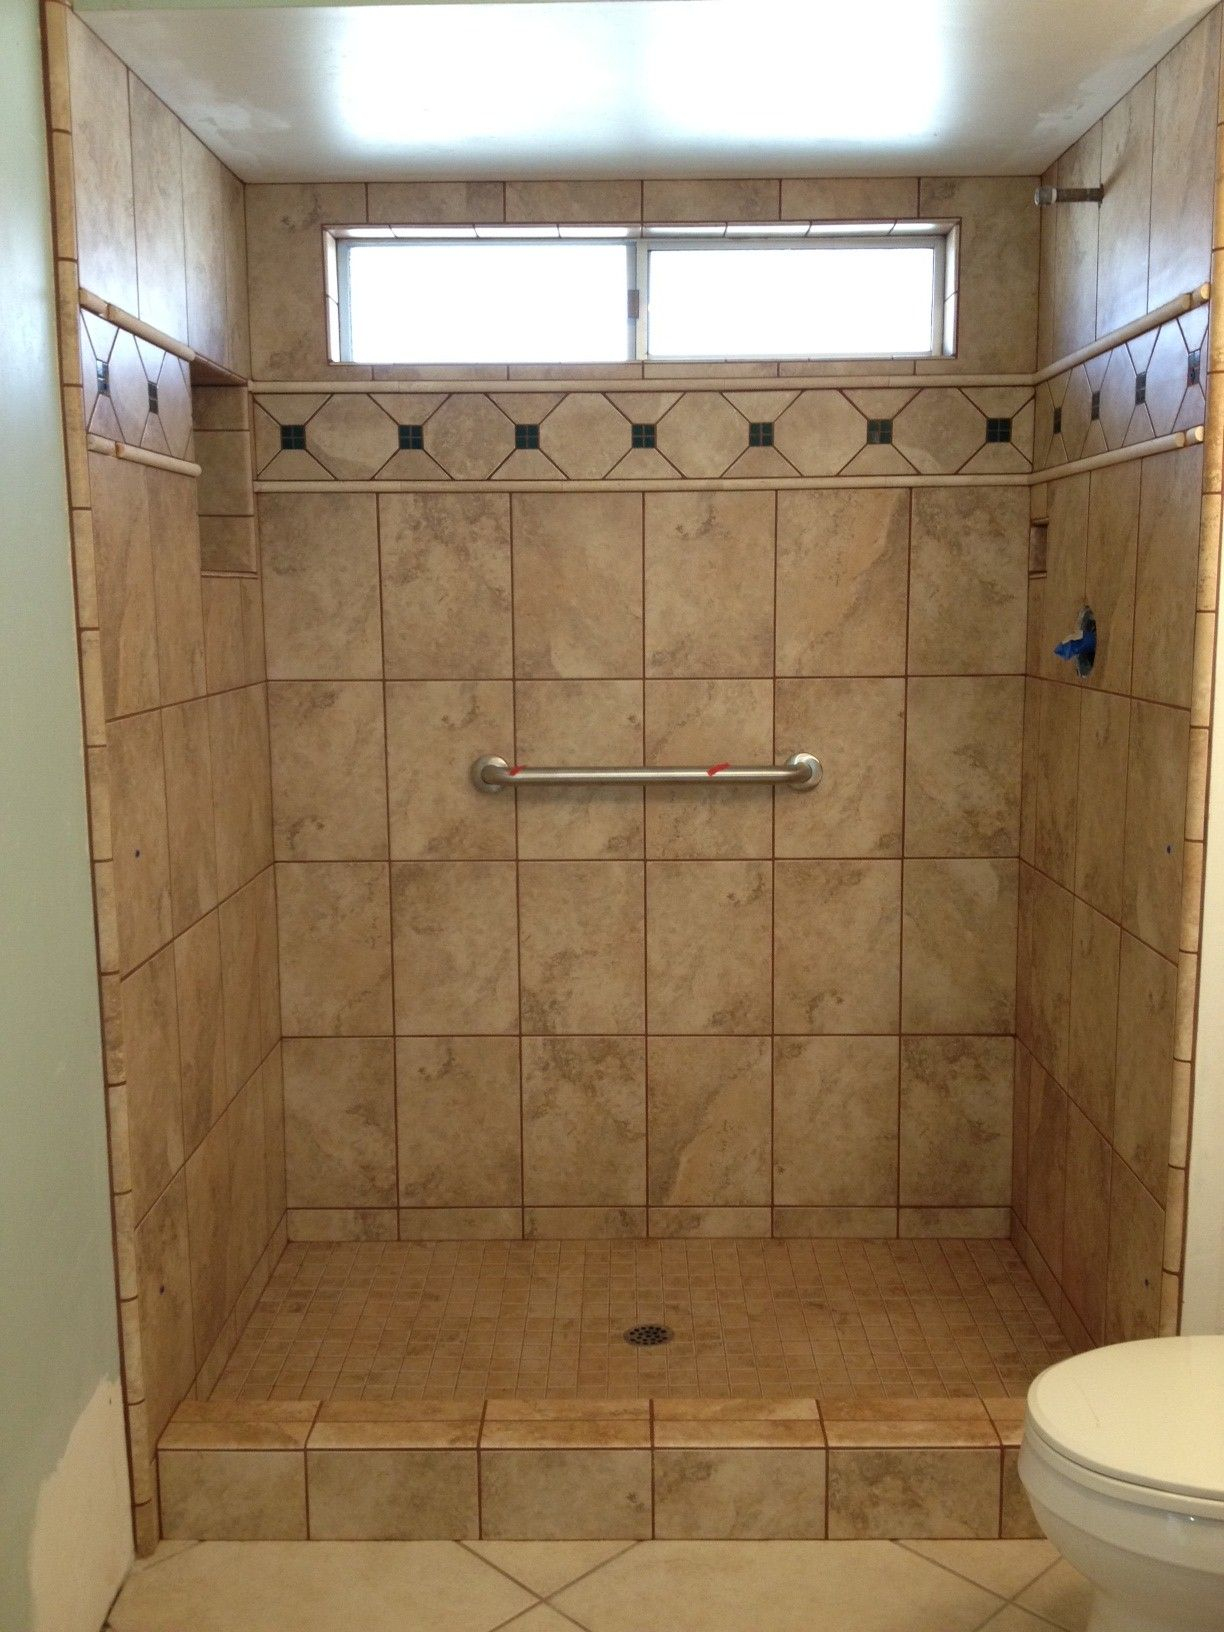 Best Kitchen Gallery: Photos Of Tiled Shower Stalls Photos Gallery Custom Tile Work Co of Small Bathroom Designs Shower Stall  on rachelxblog.com